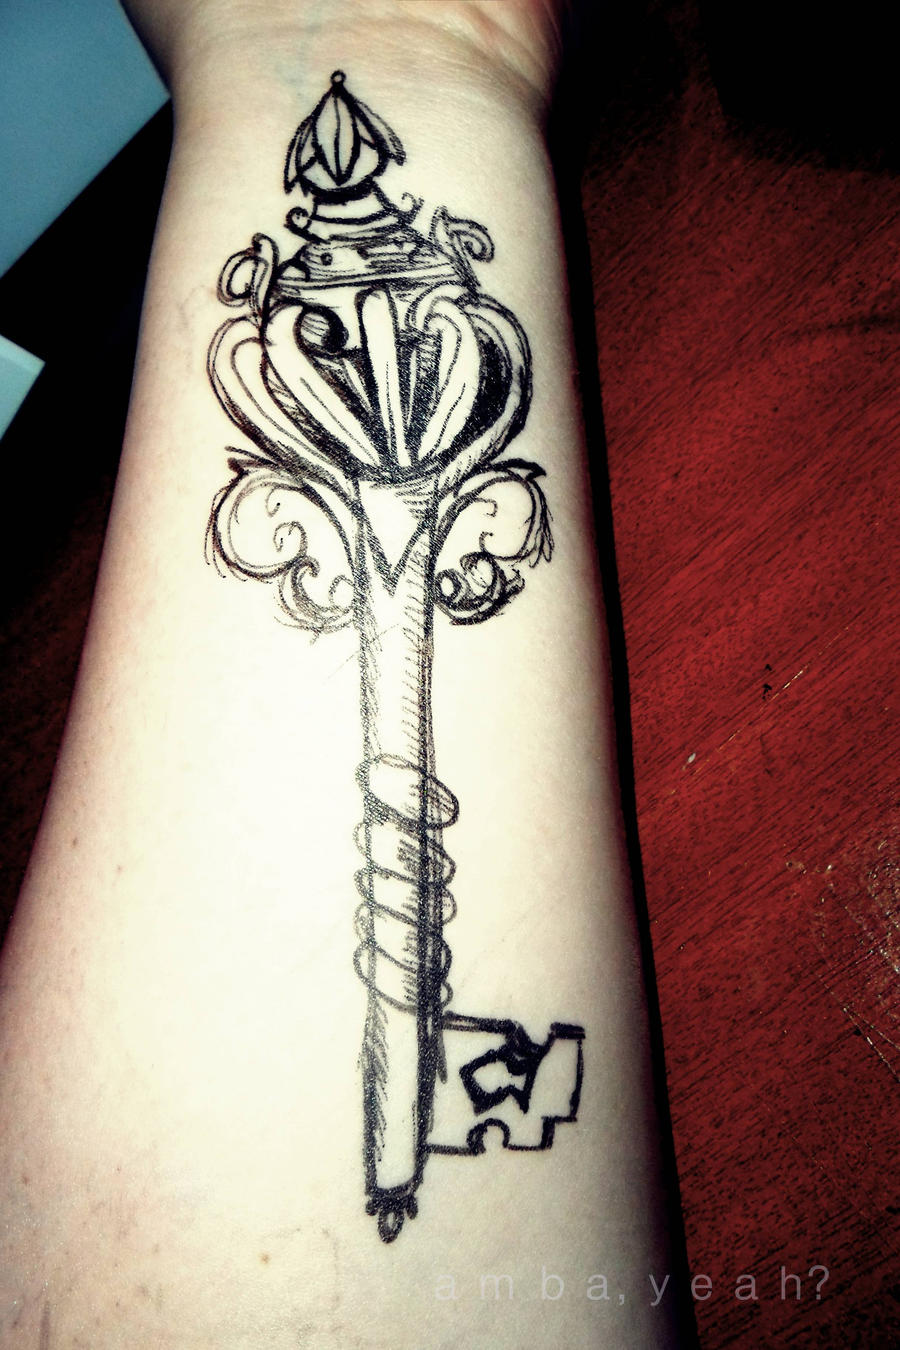 Skeleton Key by Tripptych on DeviantArt